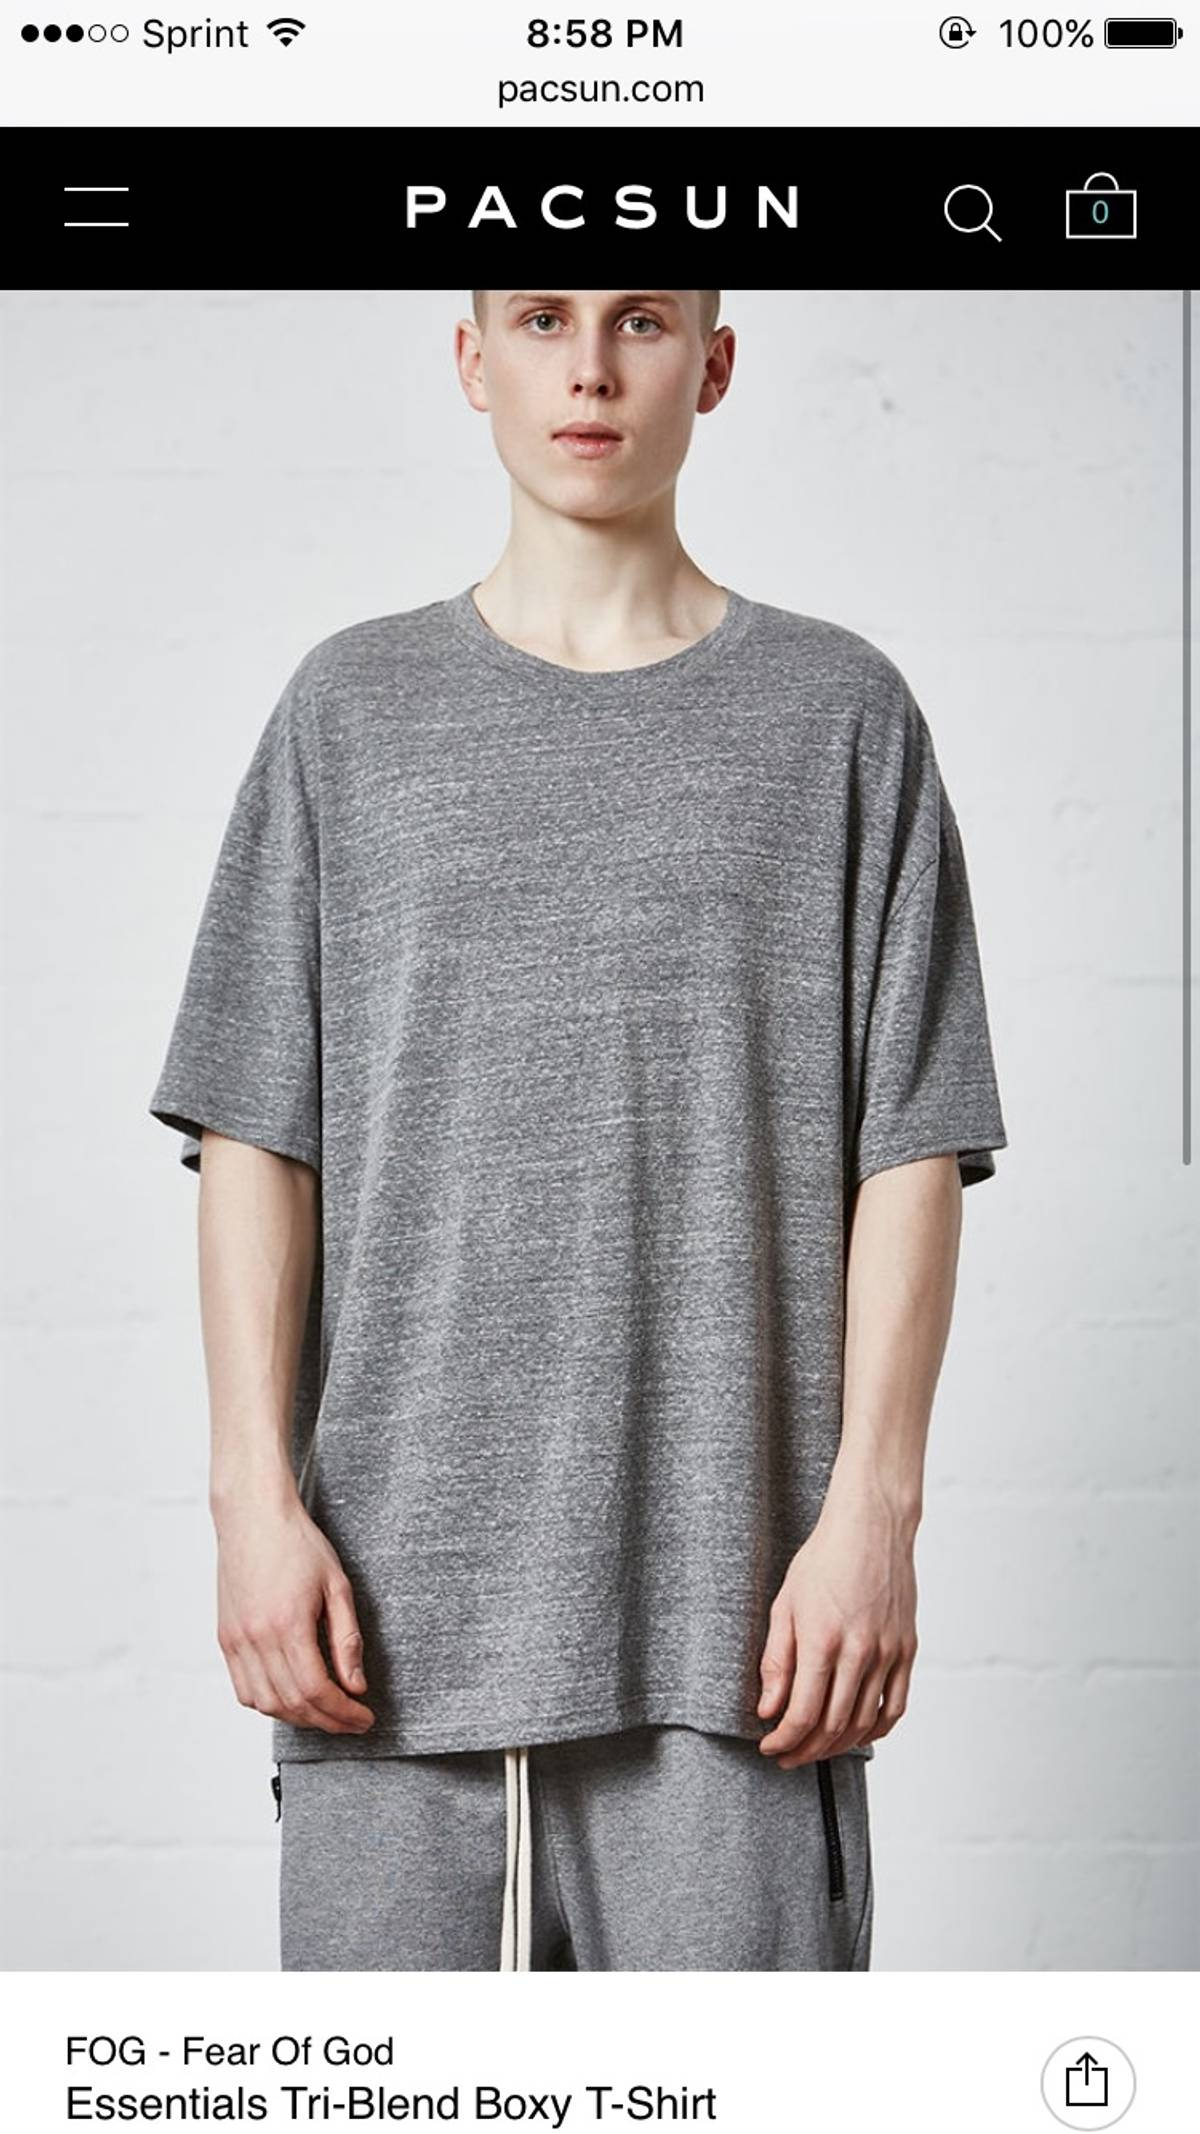 56e1c03bfe323 Pacsun Fear Of God Pacsun FOG Essentials Tri-Blend Boxy T Shirt Size s -  Short Sleeve T-Shirts for Sale - Grailed